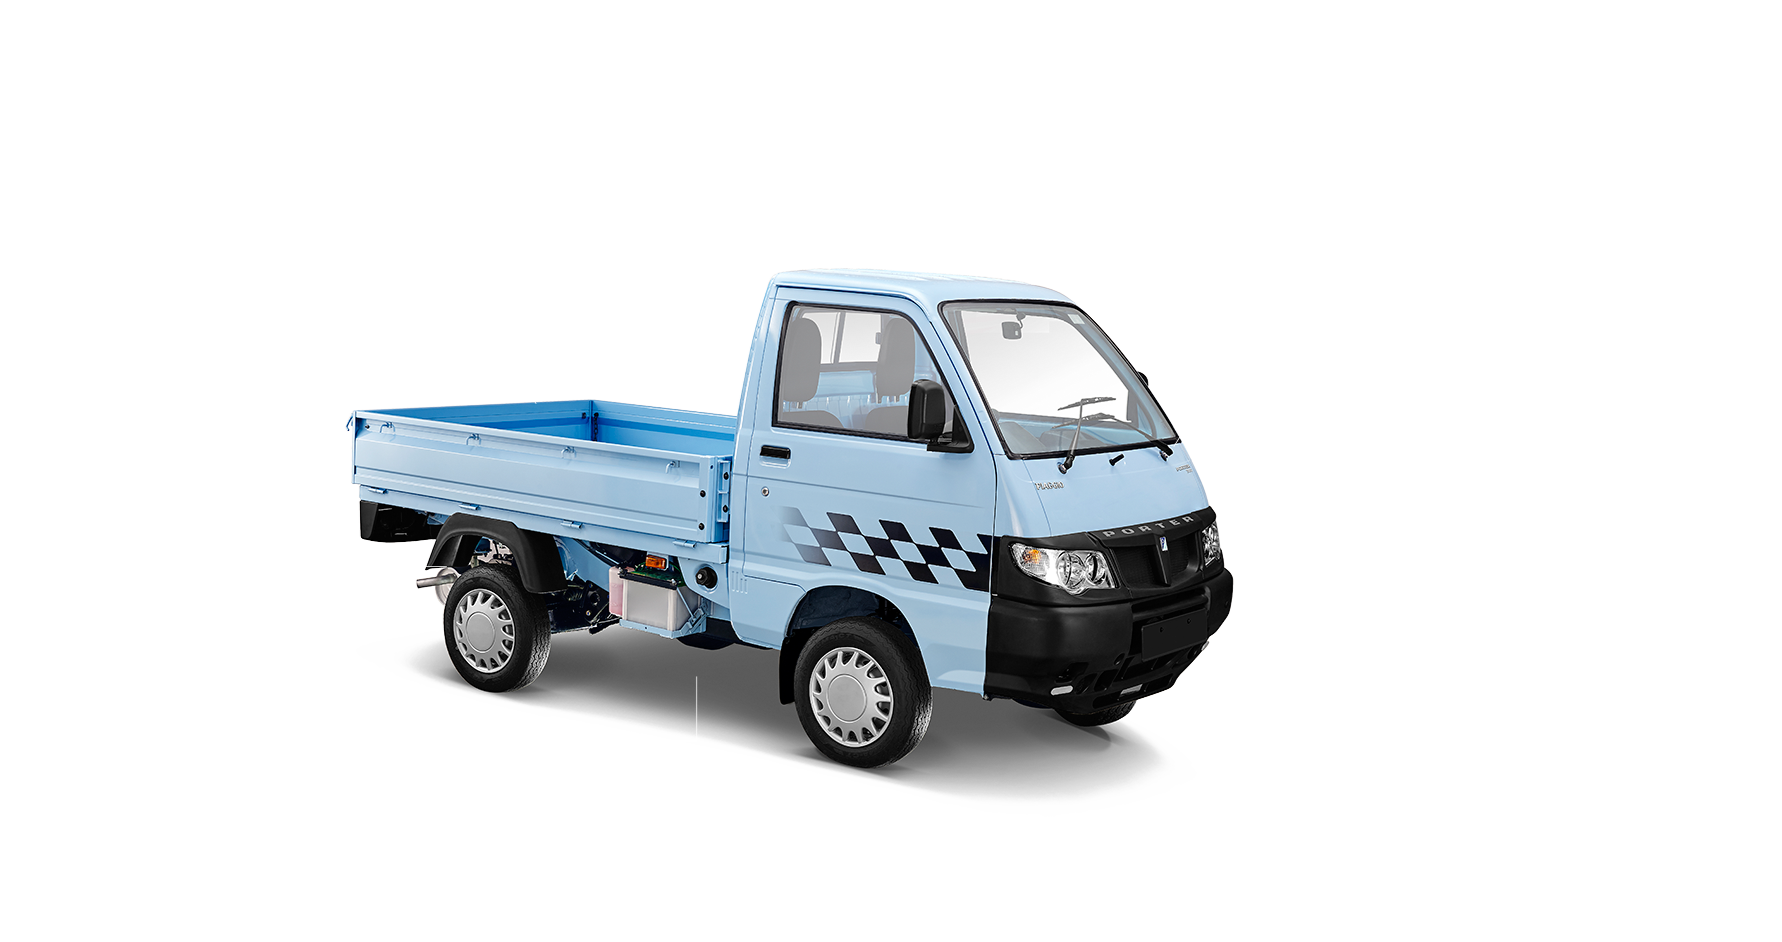 Capacity (cc)650 Power (kw)14.3 Torque (Nm)38 Fuel consumption (km/l)25.64   OTHER FEATURES   Cargo area (mm)1950 x 1400 x 315 Gross vehicle weight (kg)1475 Kerb weight (kg)775 Payload (kg)700